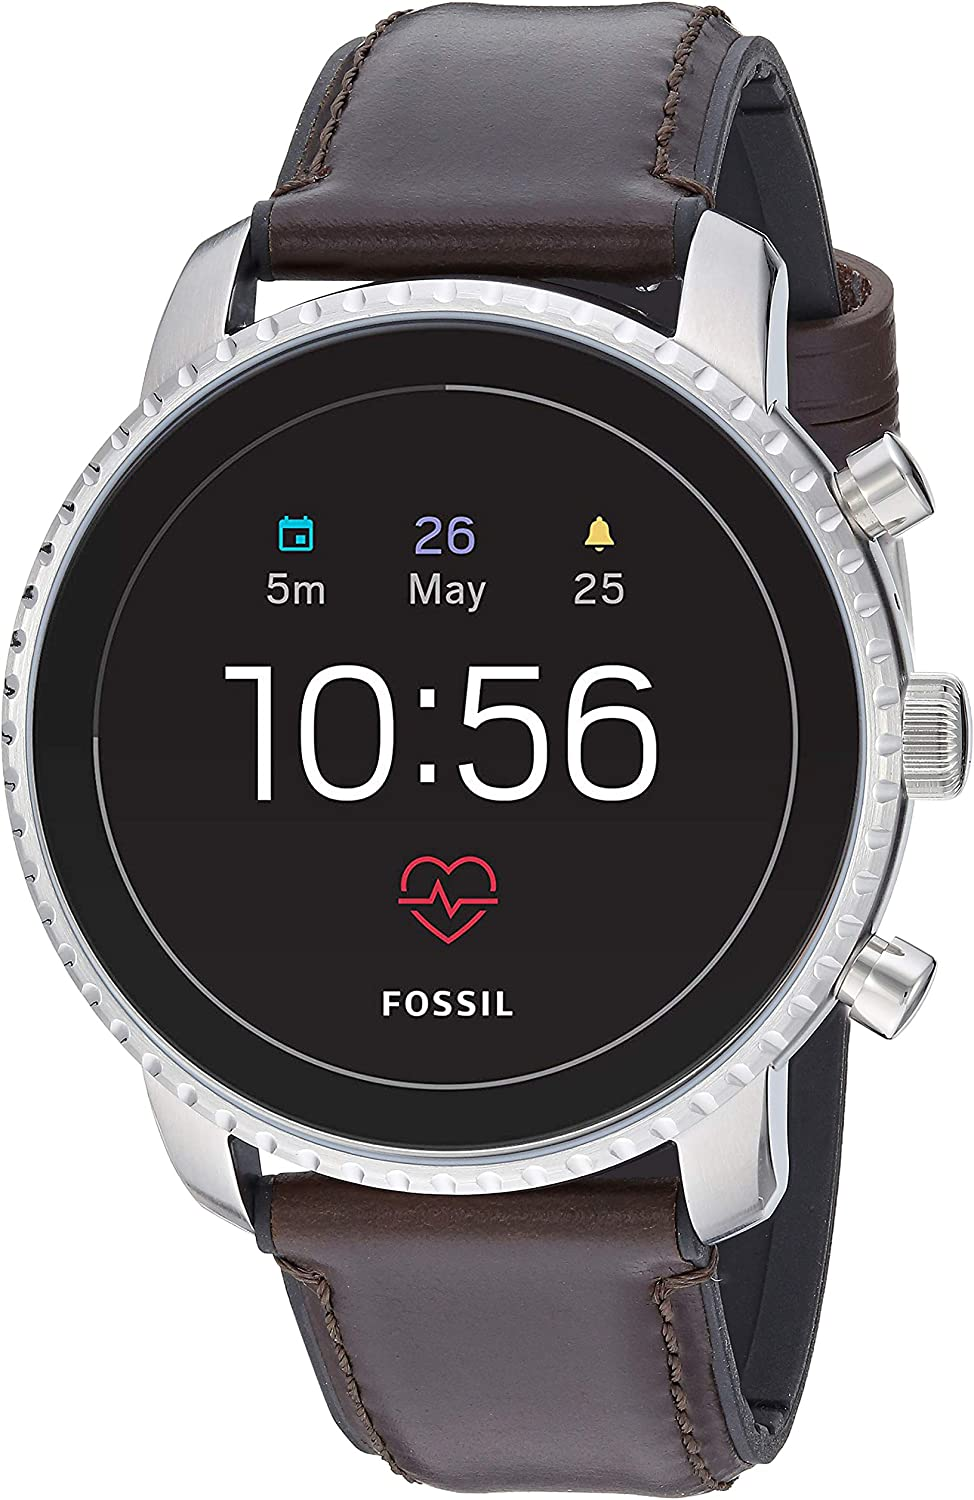 Fossil Mens Gen 4 Explorist HR Heart Rate Stainless Steel and Leather Touchscreen Smartwatch, Color: Silver, Brown (Model: FTW4015)